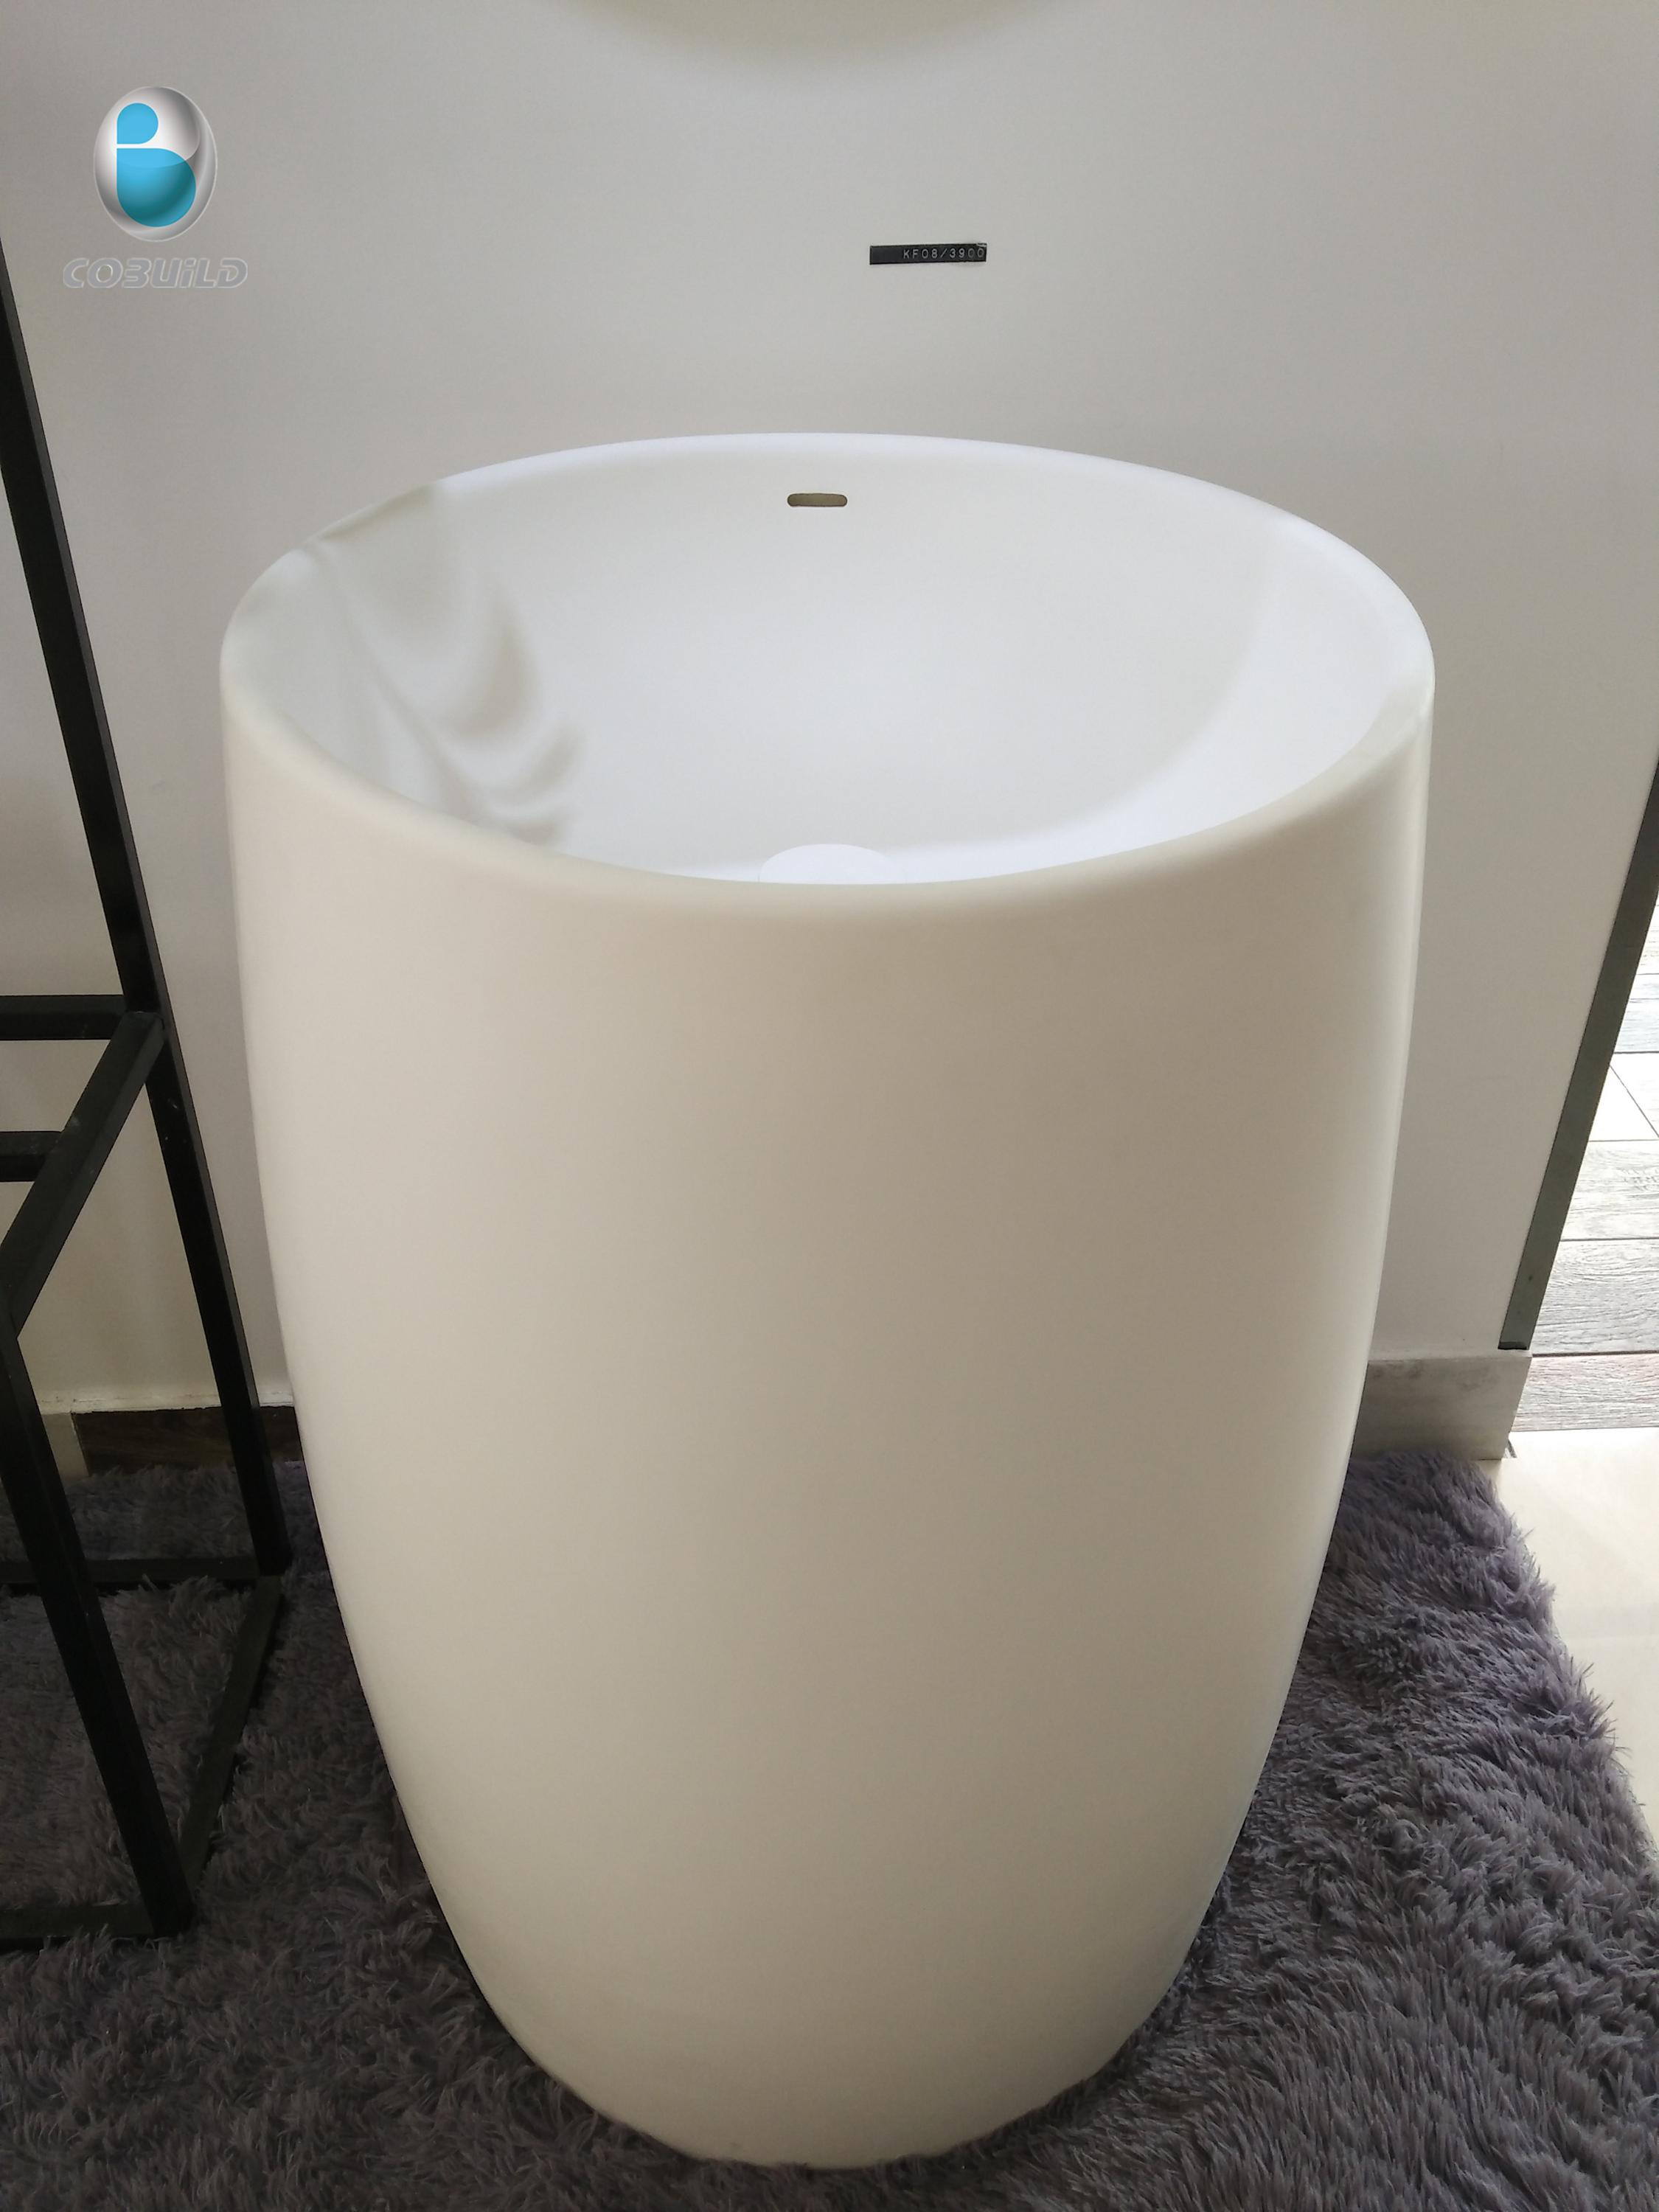 Luxury Pedestal Engineered Stone Sink/one Piece Free ... on Outdoor Sink With Stand id=47941